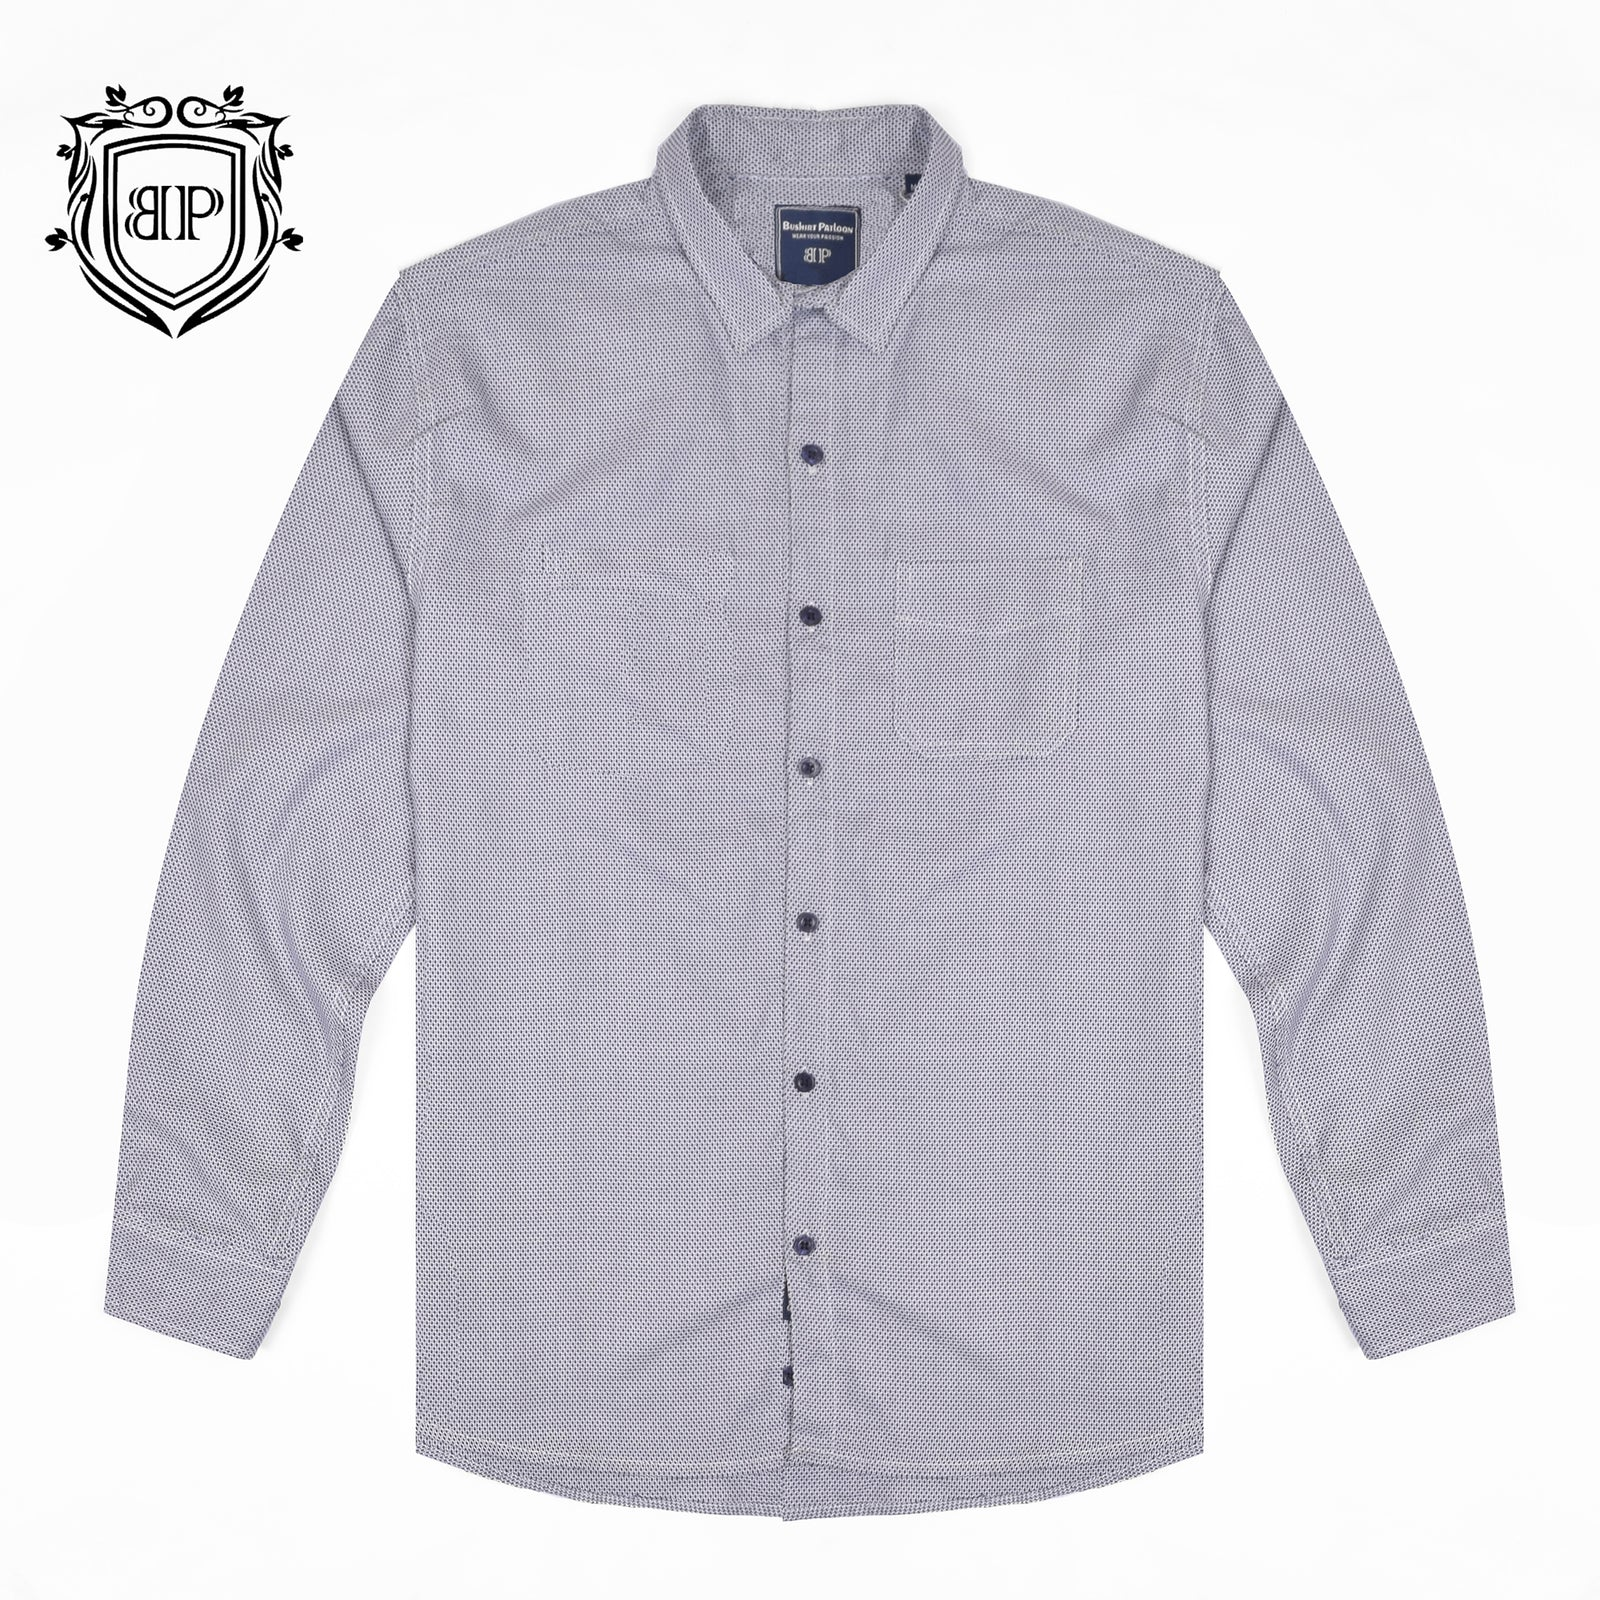 Casual Shirts For Men Brandsego